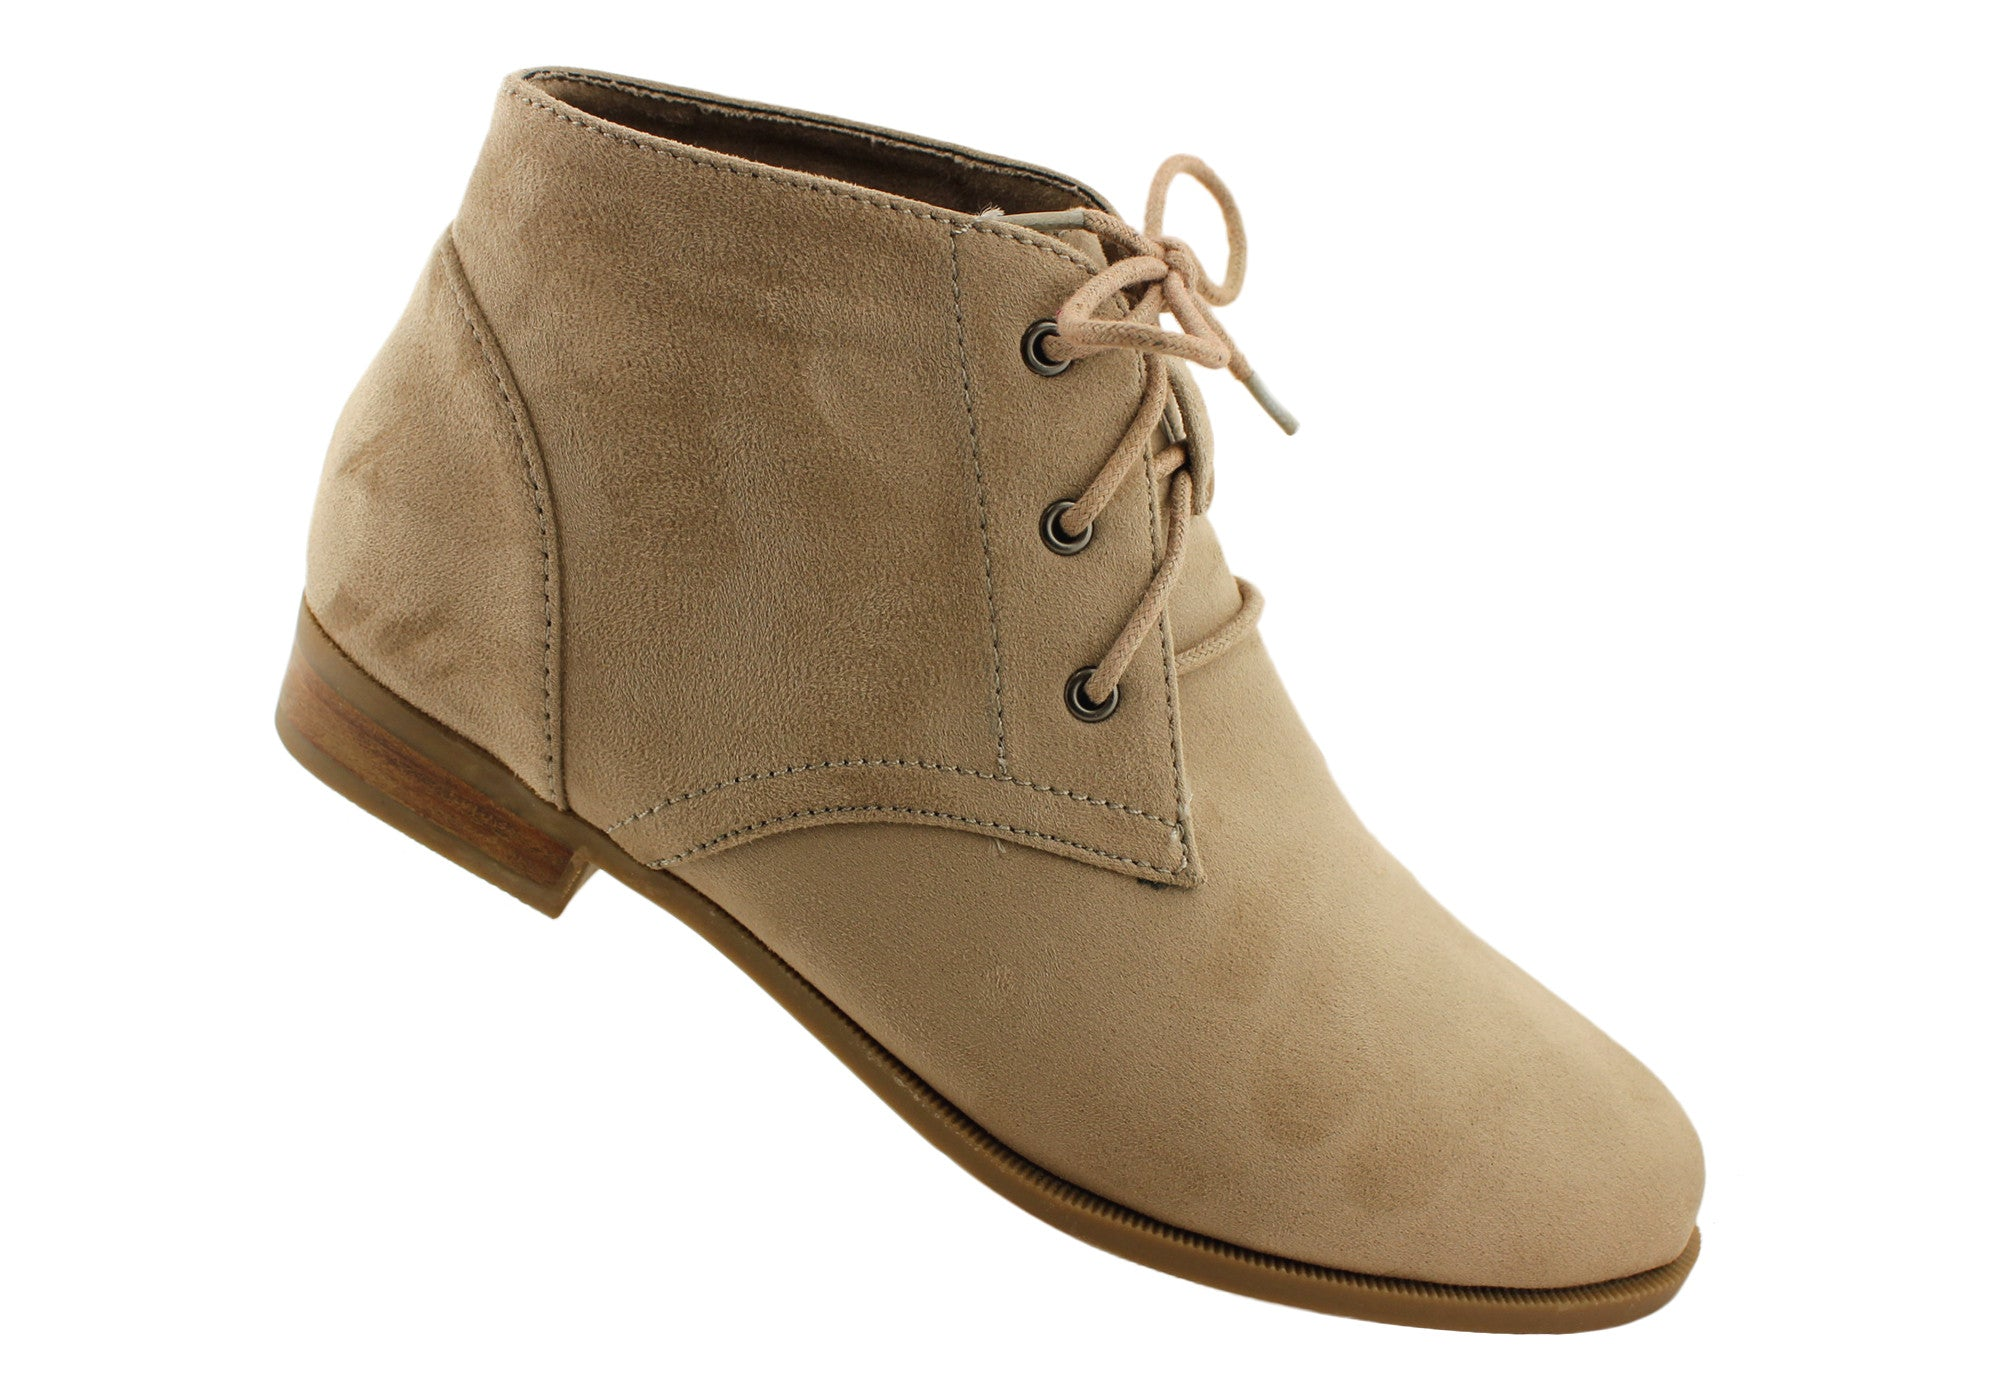 Ankle Boots Without Heel - Boot Yc